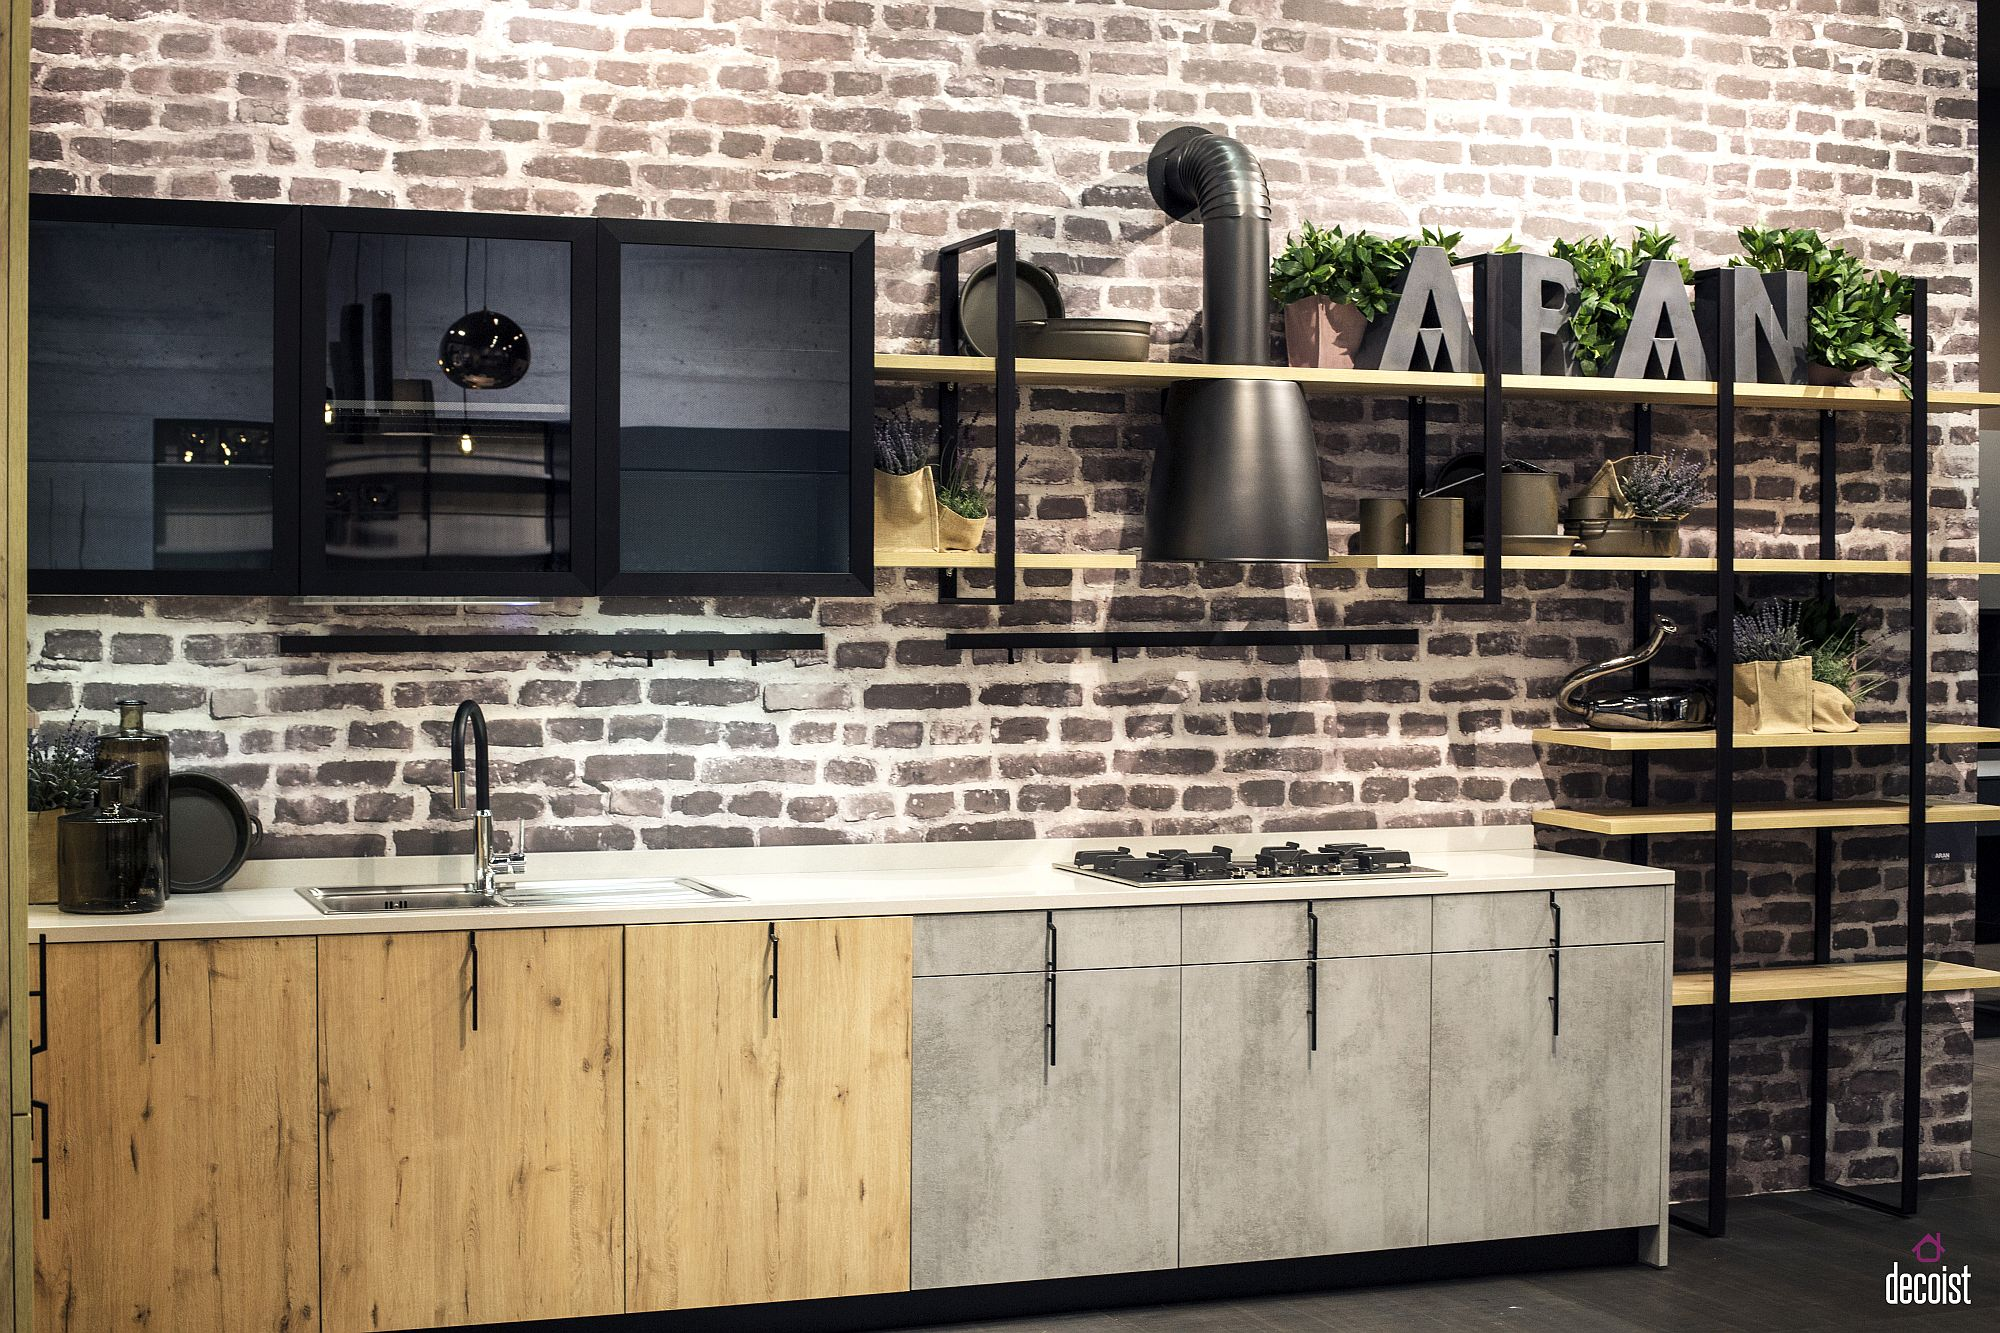 Dashing modern industrial single wall kitchen idea for the small apartment